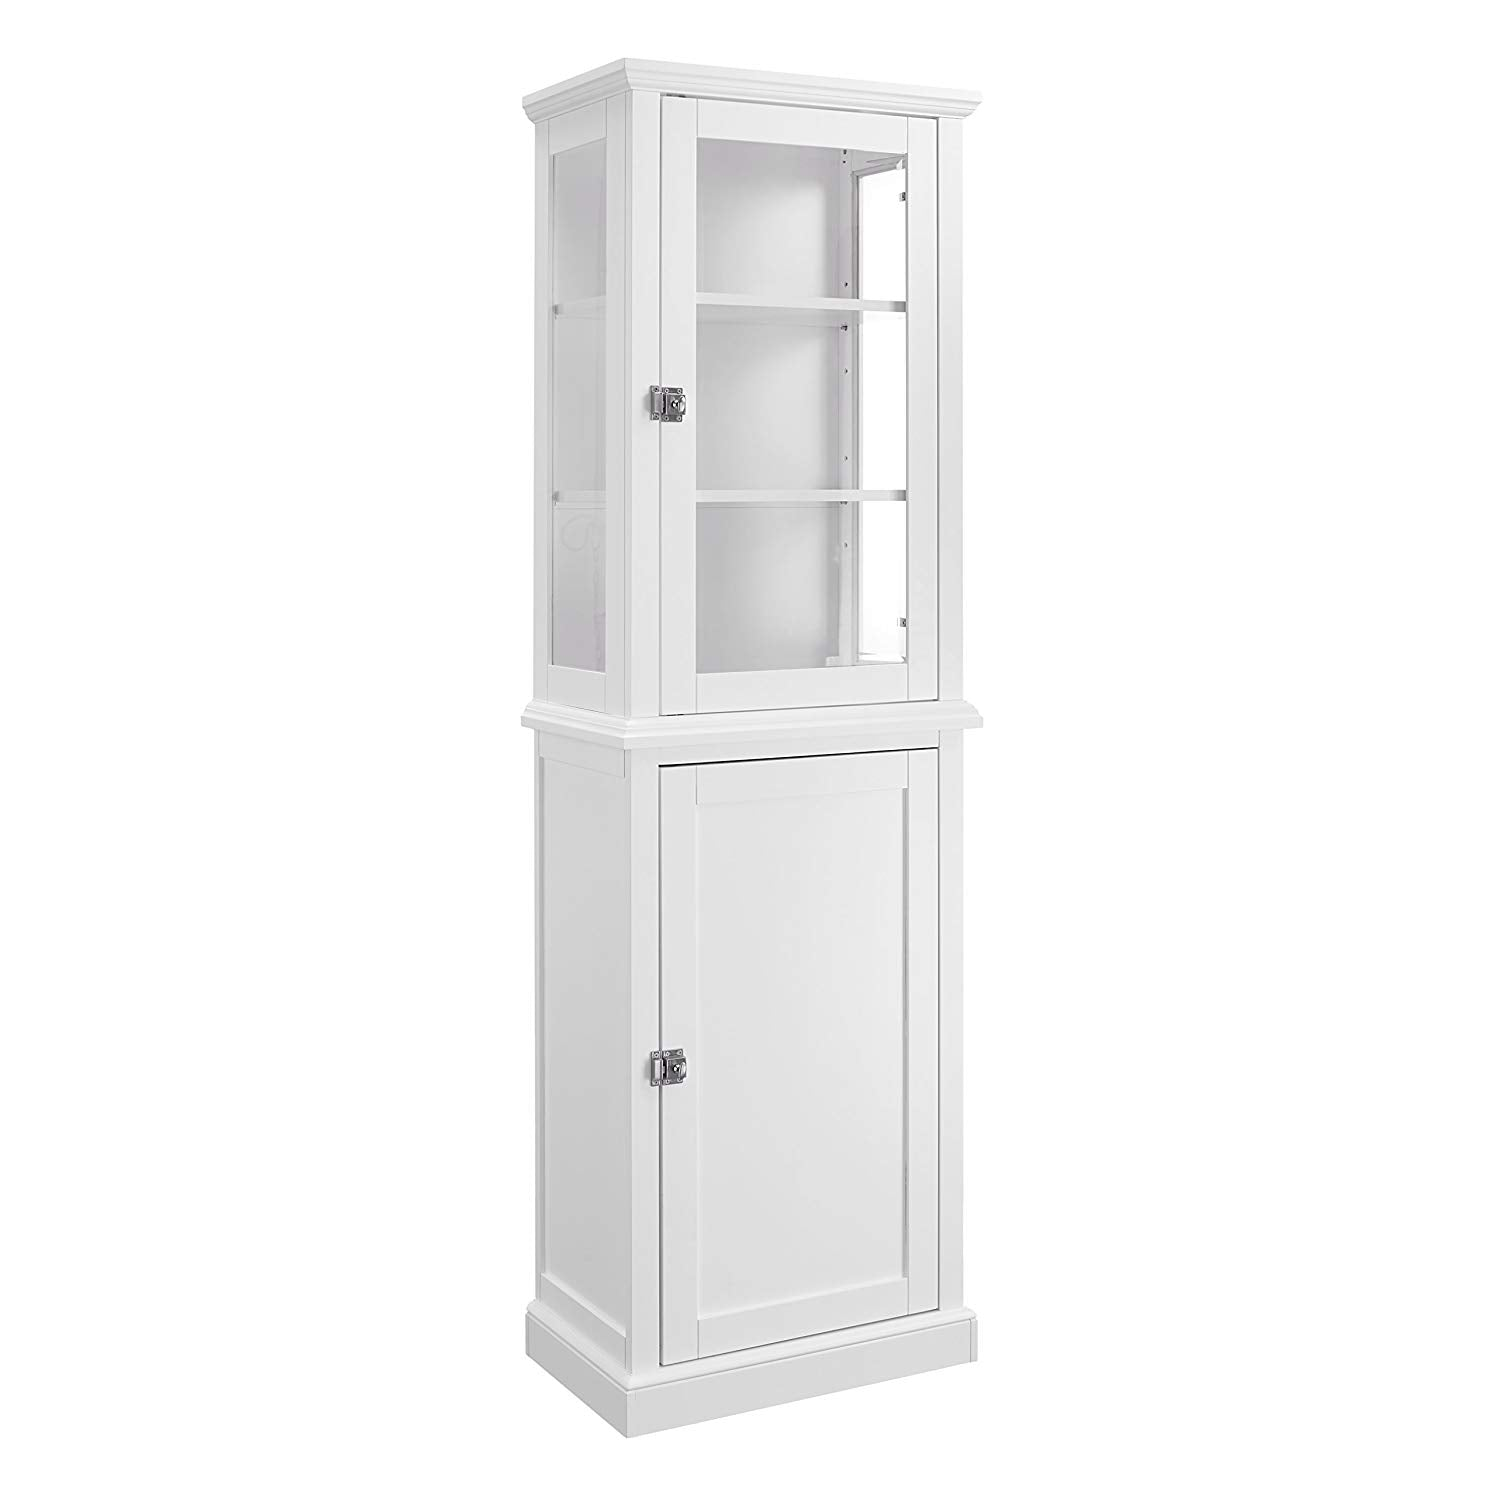 Scarsdale Tall Bathroom Cabinet — White